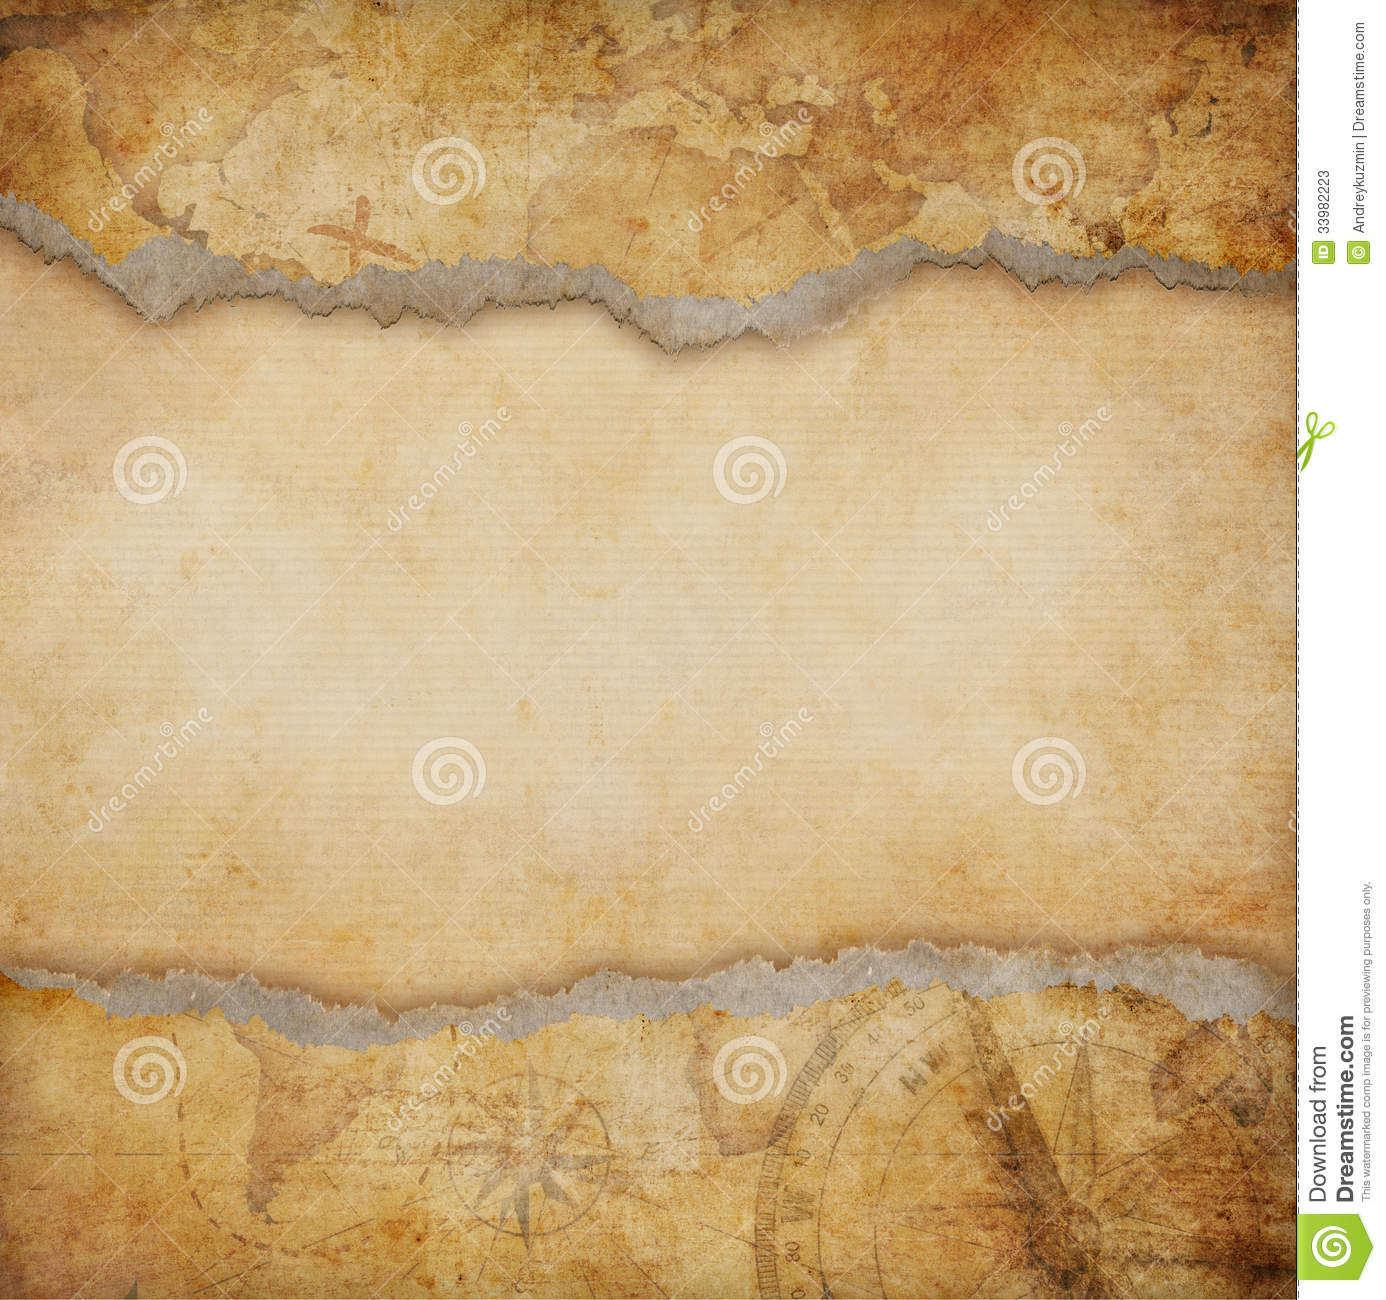 3d Animation Wallpaper Download Old Torn Map Background Stock Photos Image 33982223